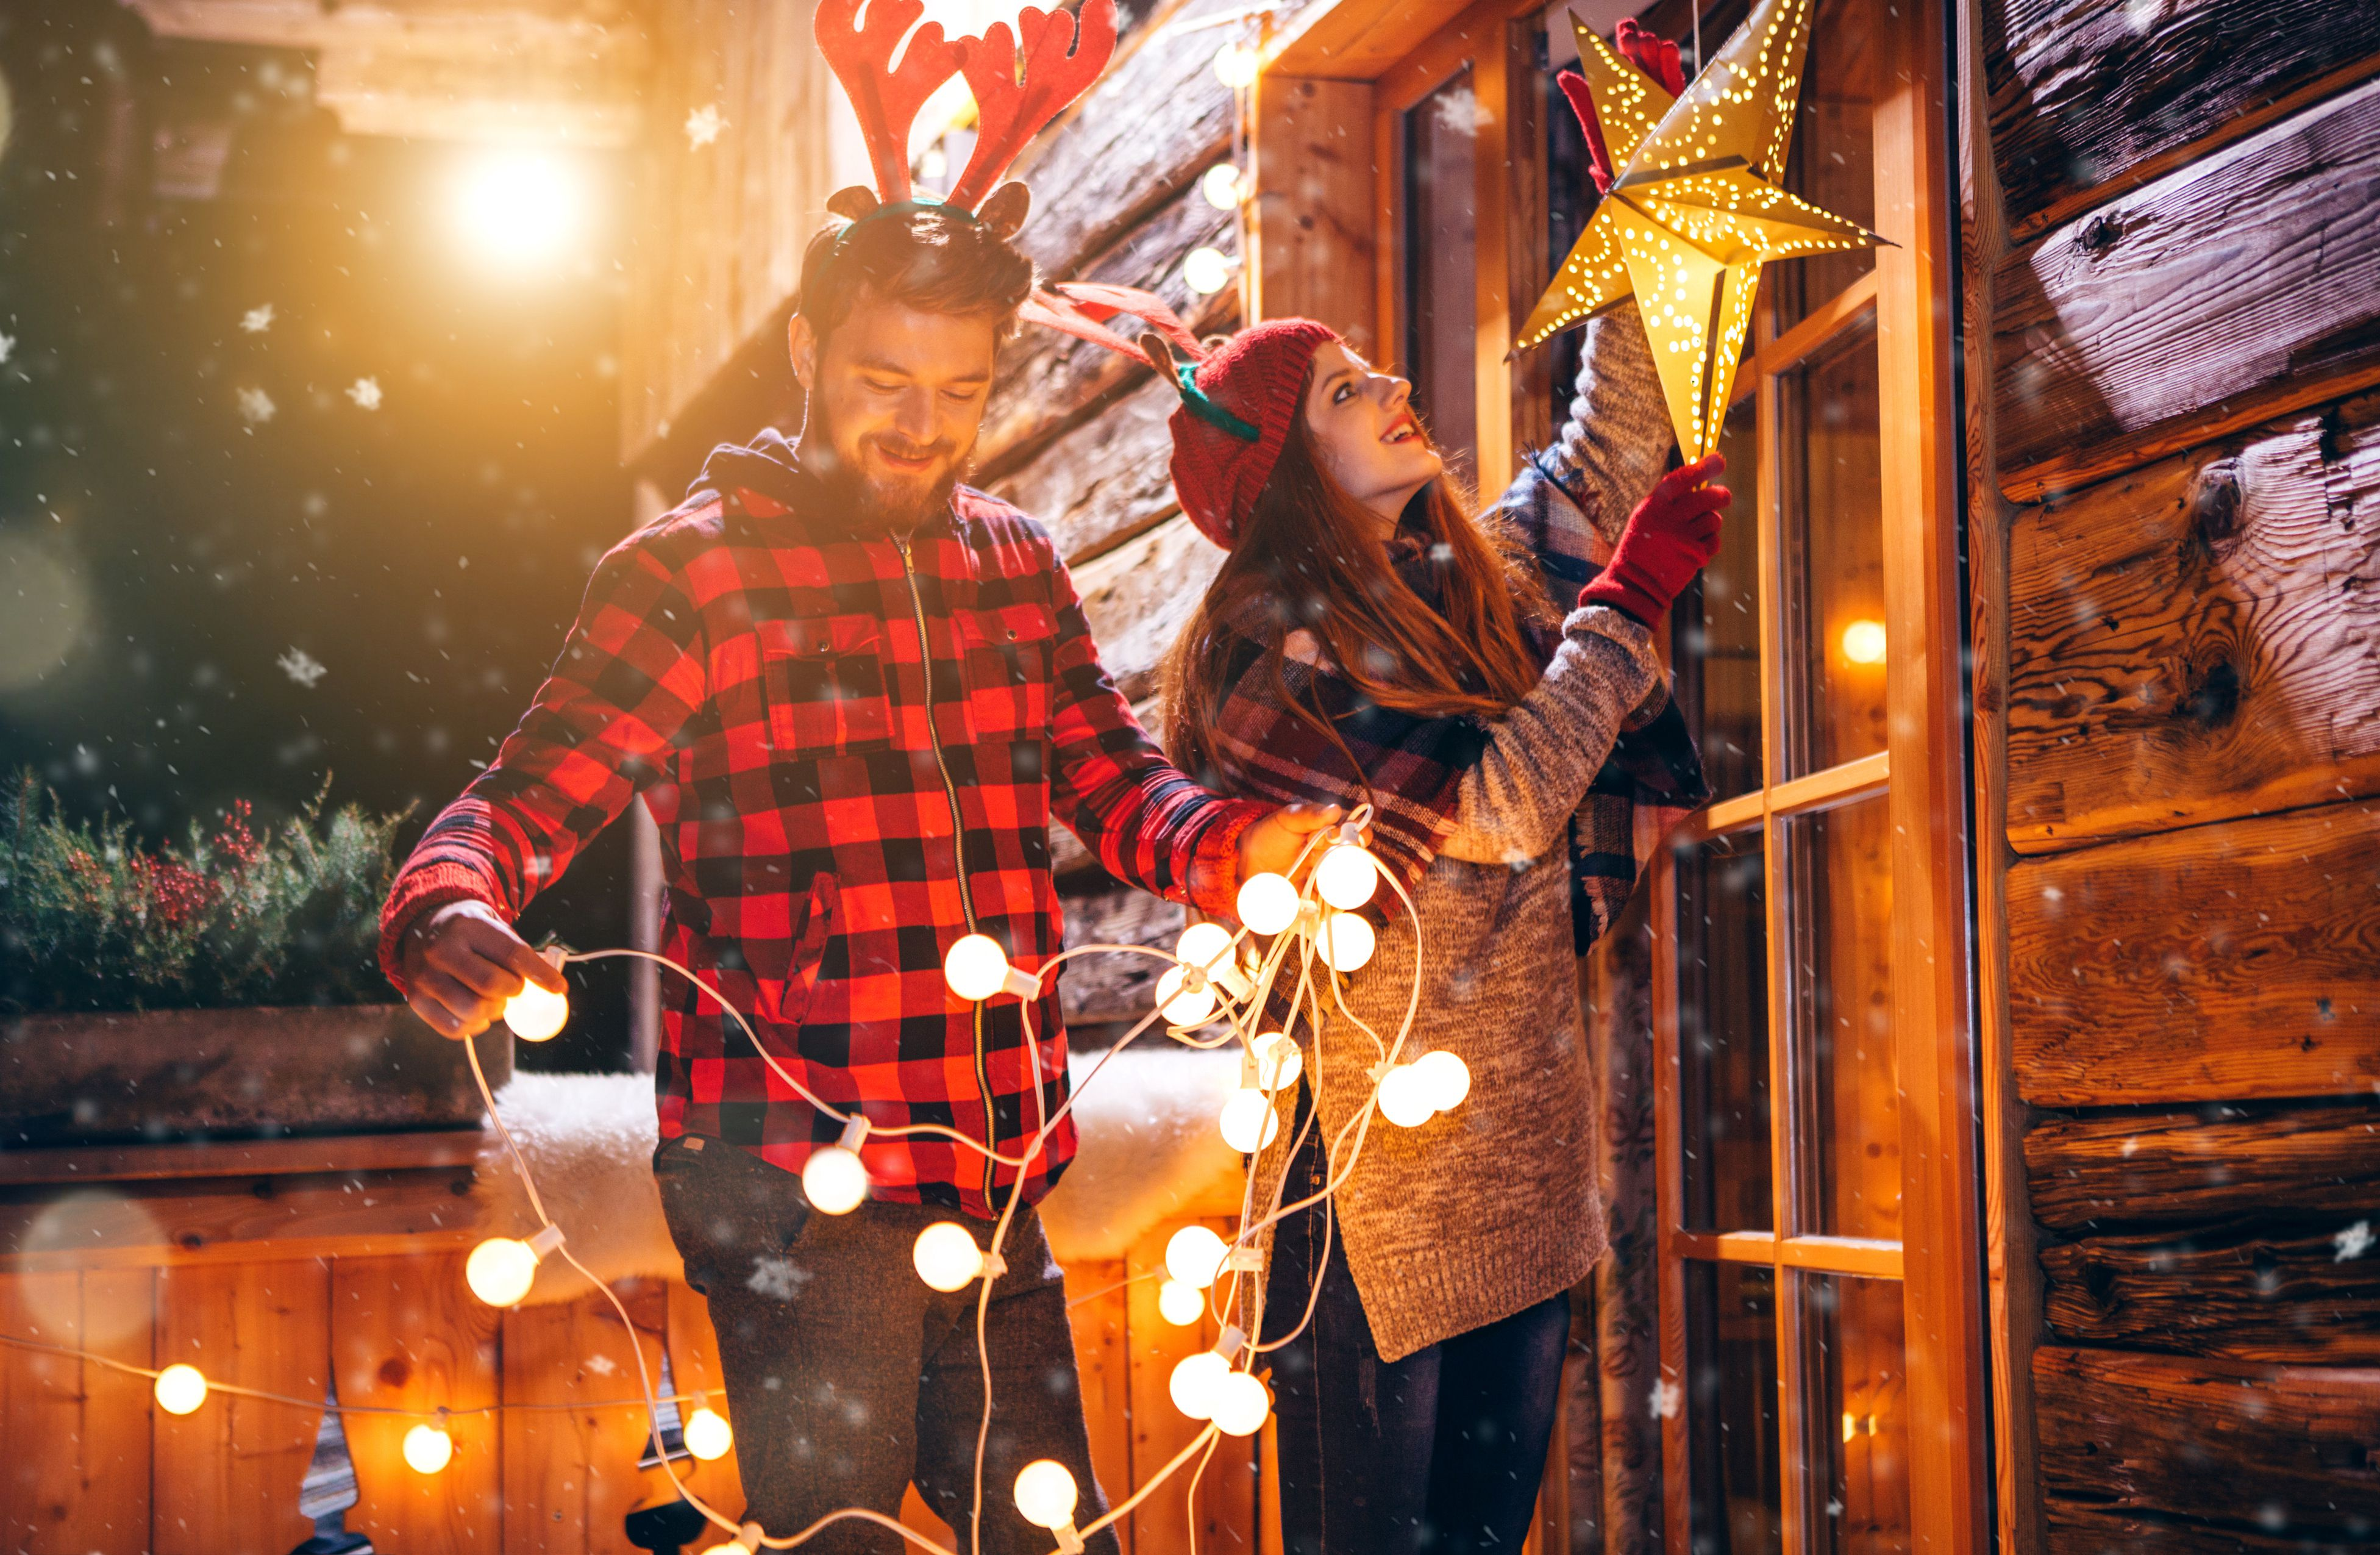 The 8 Best Outdoor Christmas Lights to Buy in 2019